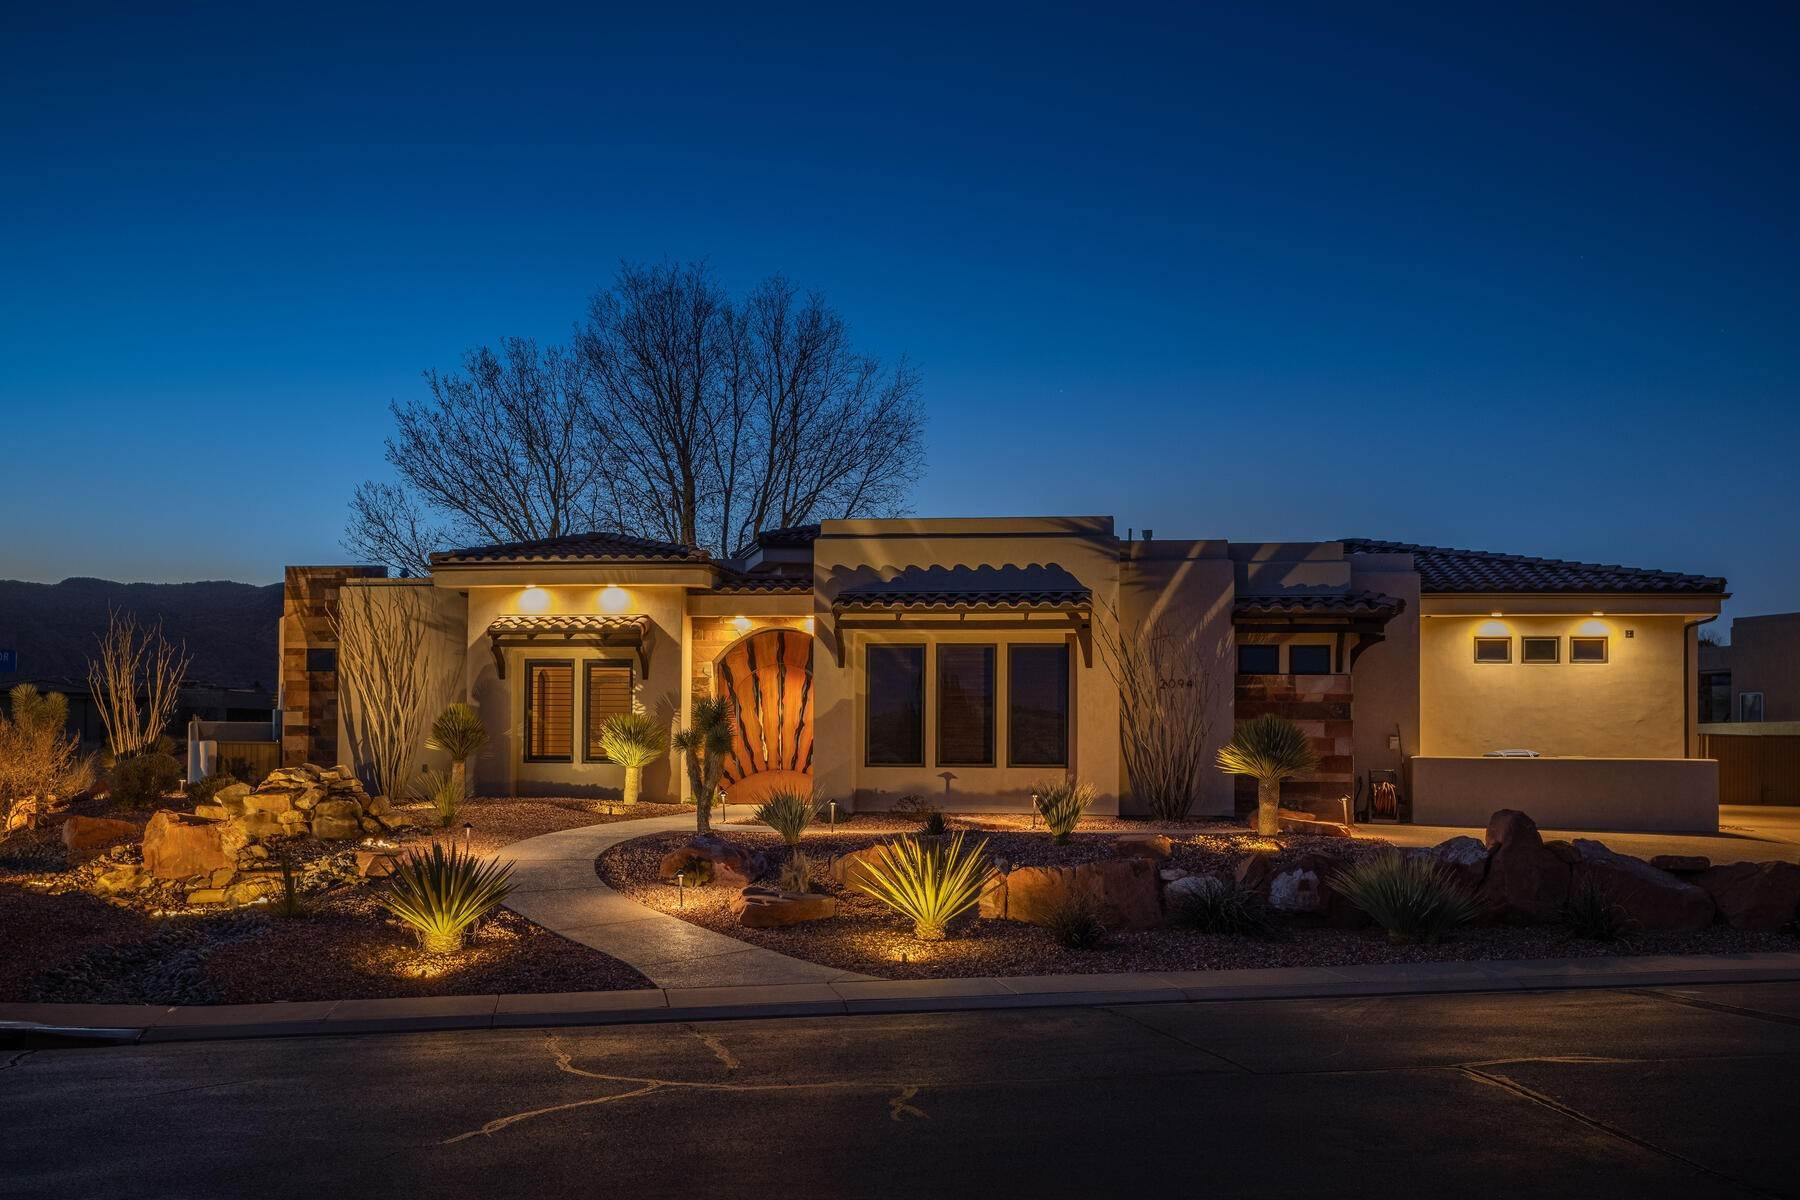 Single Family Homes for Sale at Rising Sun At The Ledges 2094 W Rising Sun Dr St. George, Utah 84770 United States